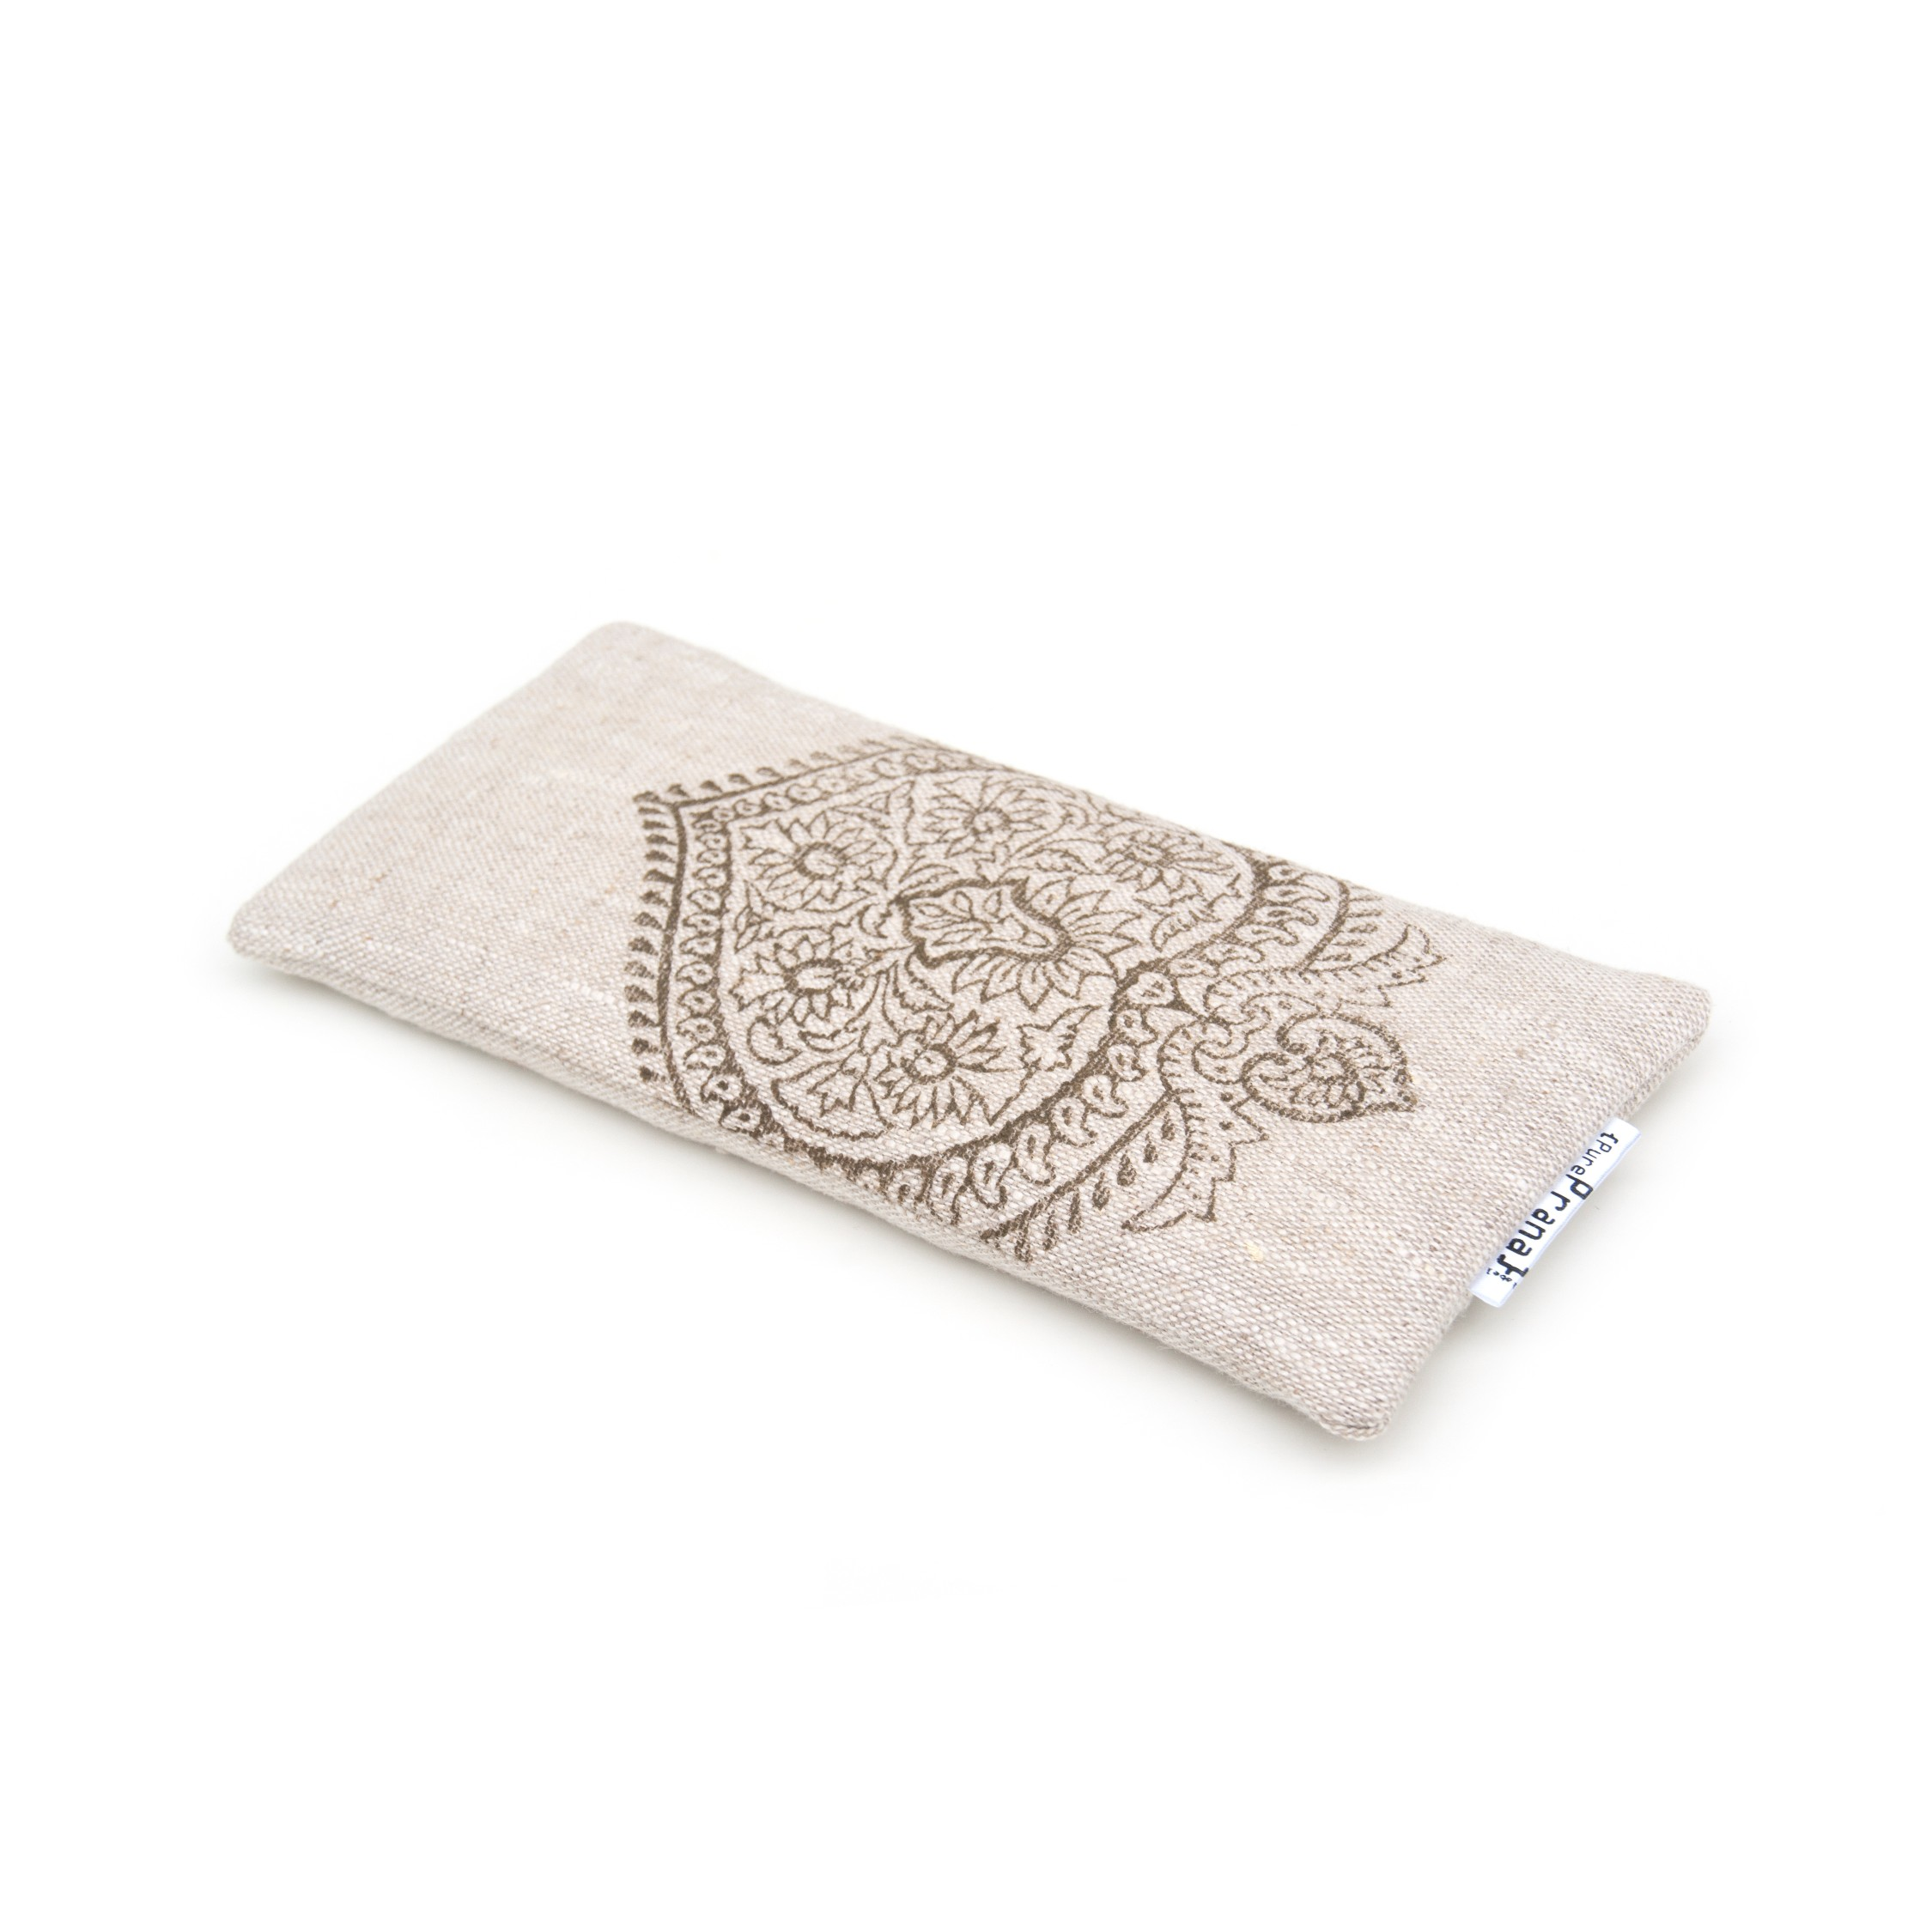 Eye pillow for savasana, in natural flax linen. Washable.